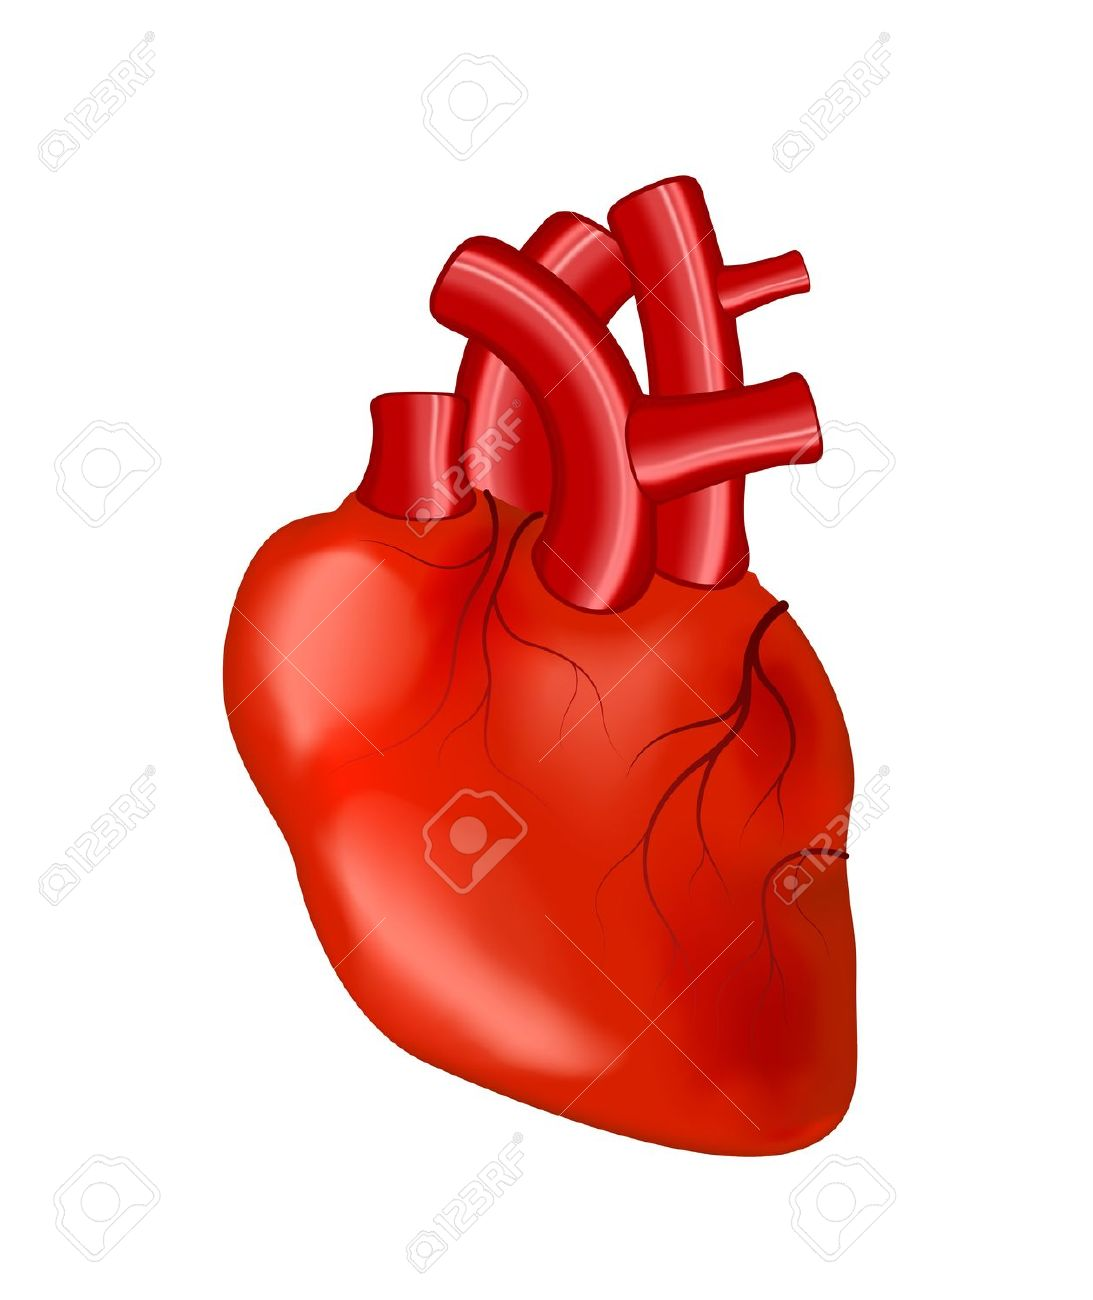 1093x1300 Collection Of Human Heart Clipart Free High Quality, Free